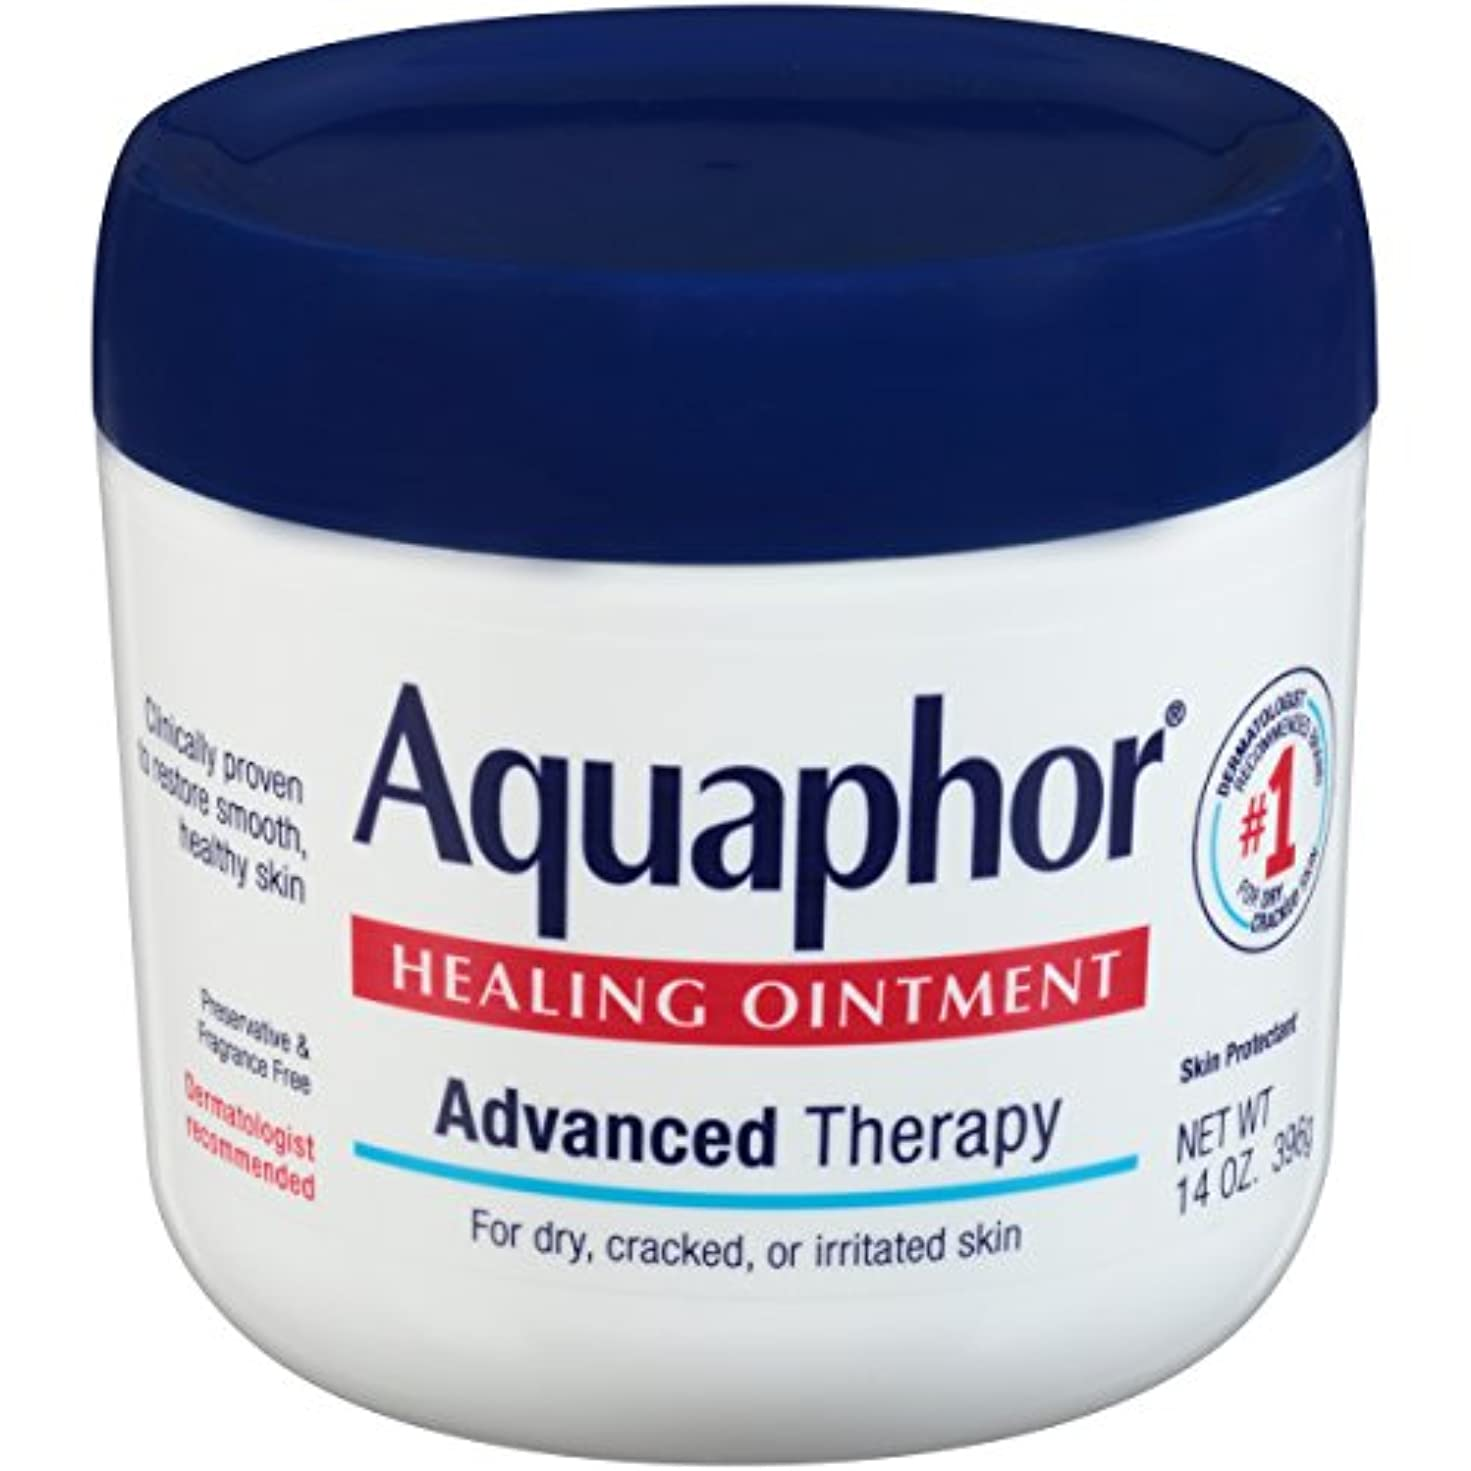 熱に関してベット海外直送品Aquaphor Advanced Therapy Healing Ointment, 14 oz by Aquaphor